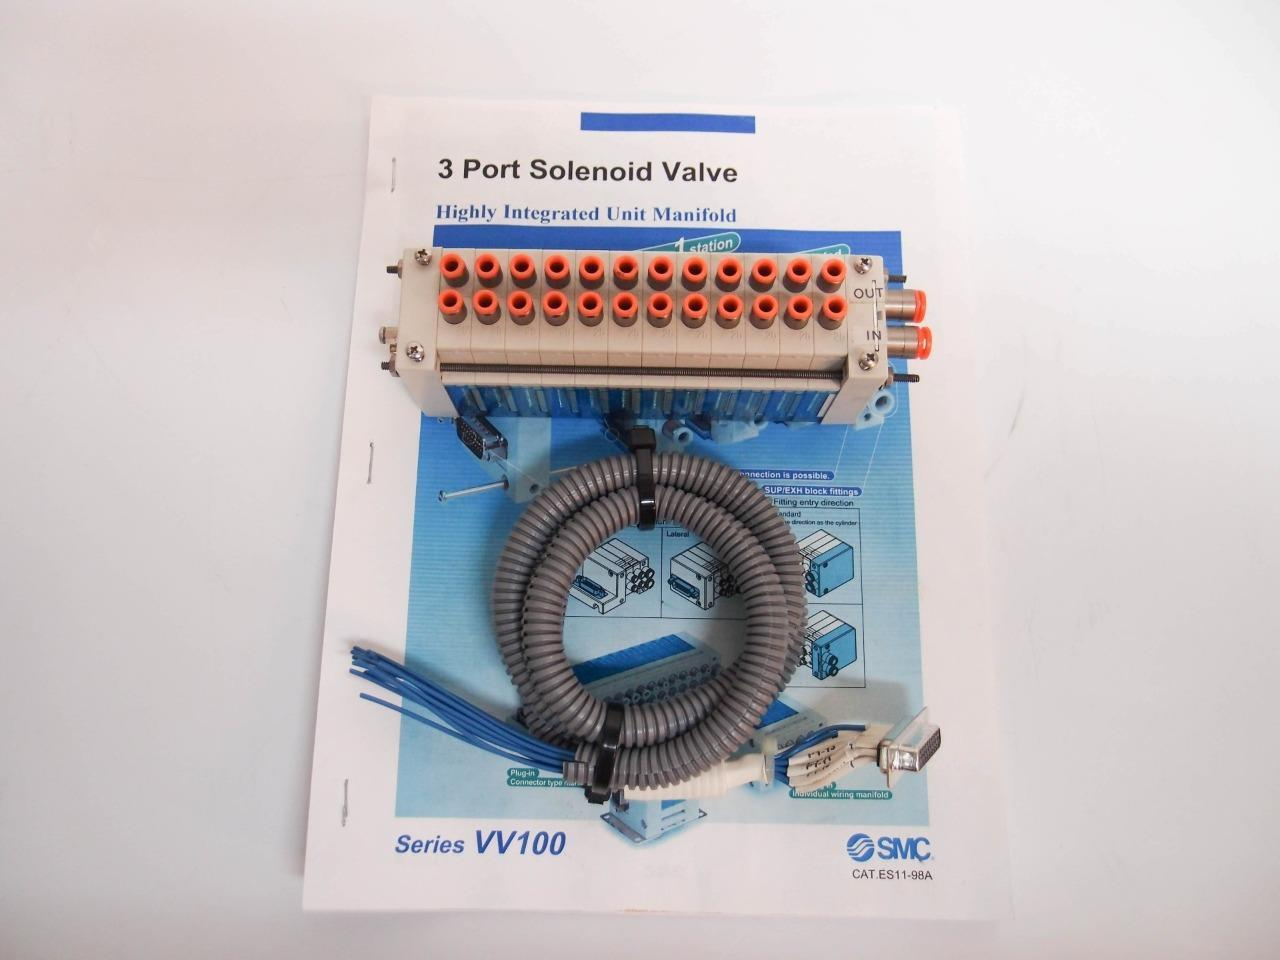 Smc Water Solenoid Valve Diagram Trusted Wiring Diagrams Manifold Vv100 3 Port Highly Integrated Unit 12 5 Do